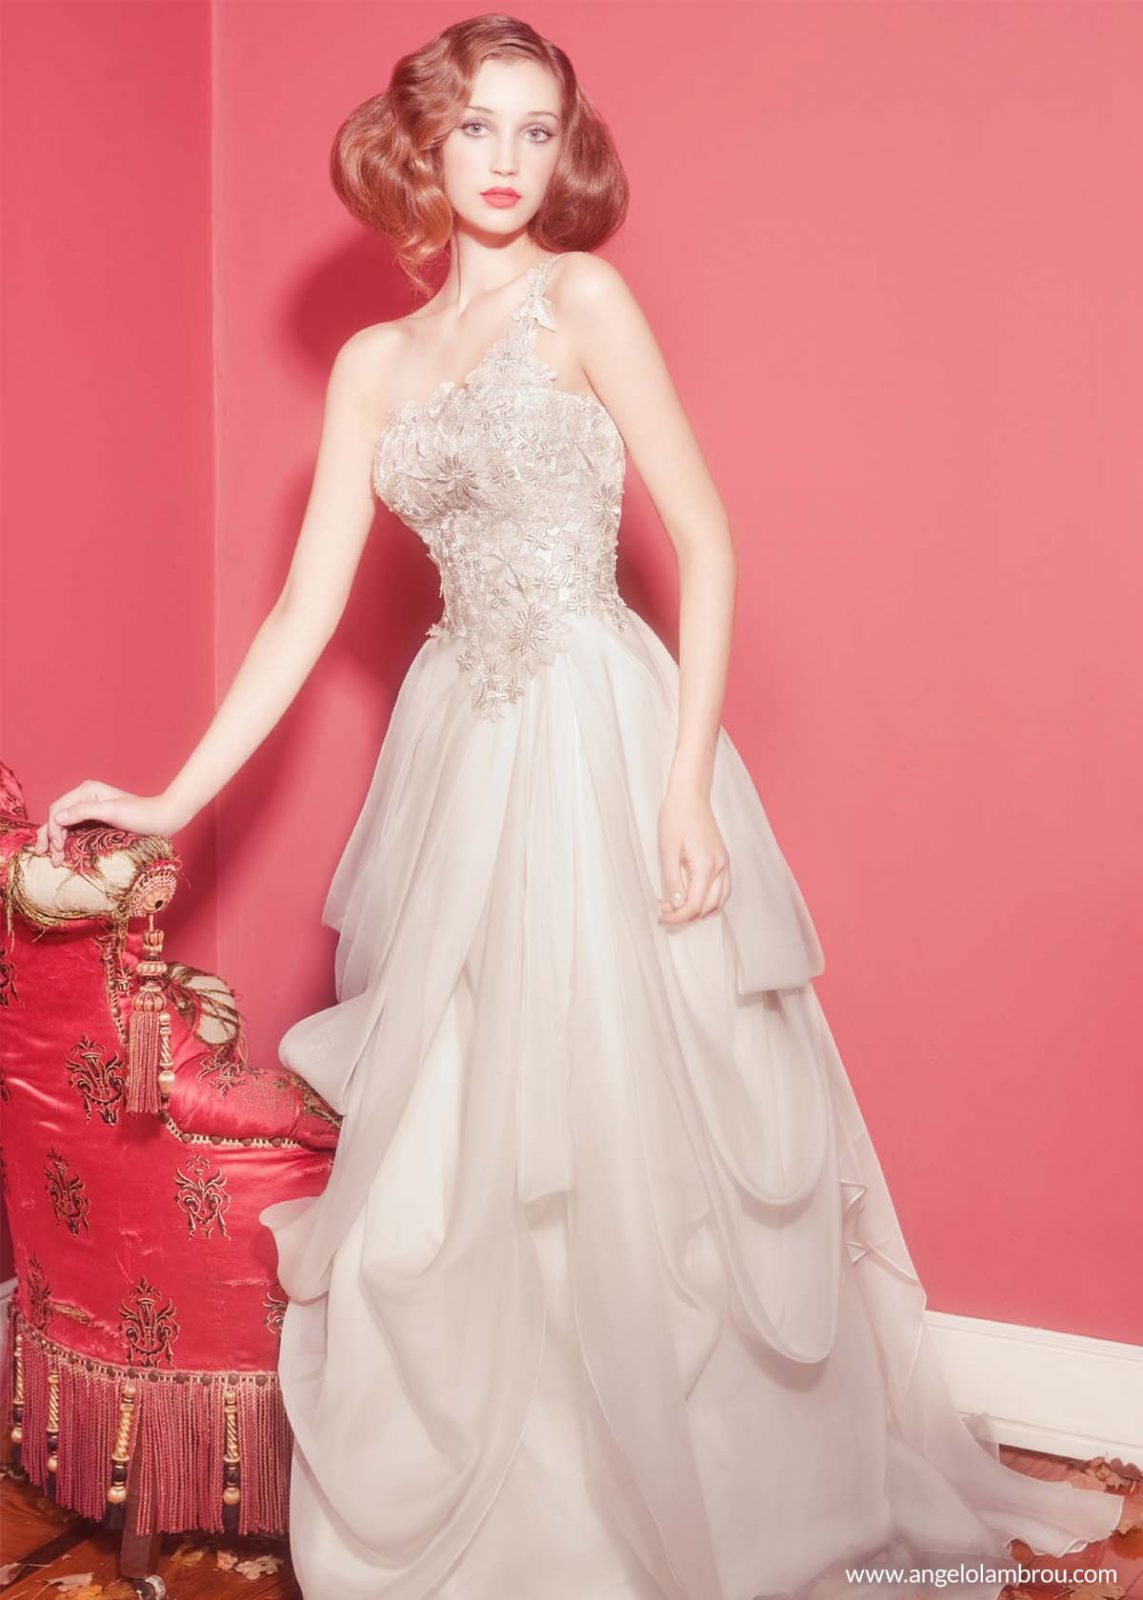 Our Silk Organza Draped Wedding Gown Has Become A Signature Classic